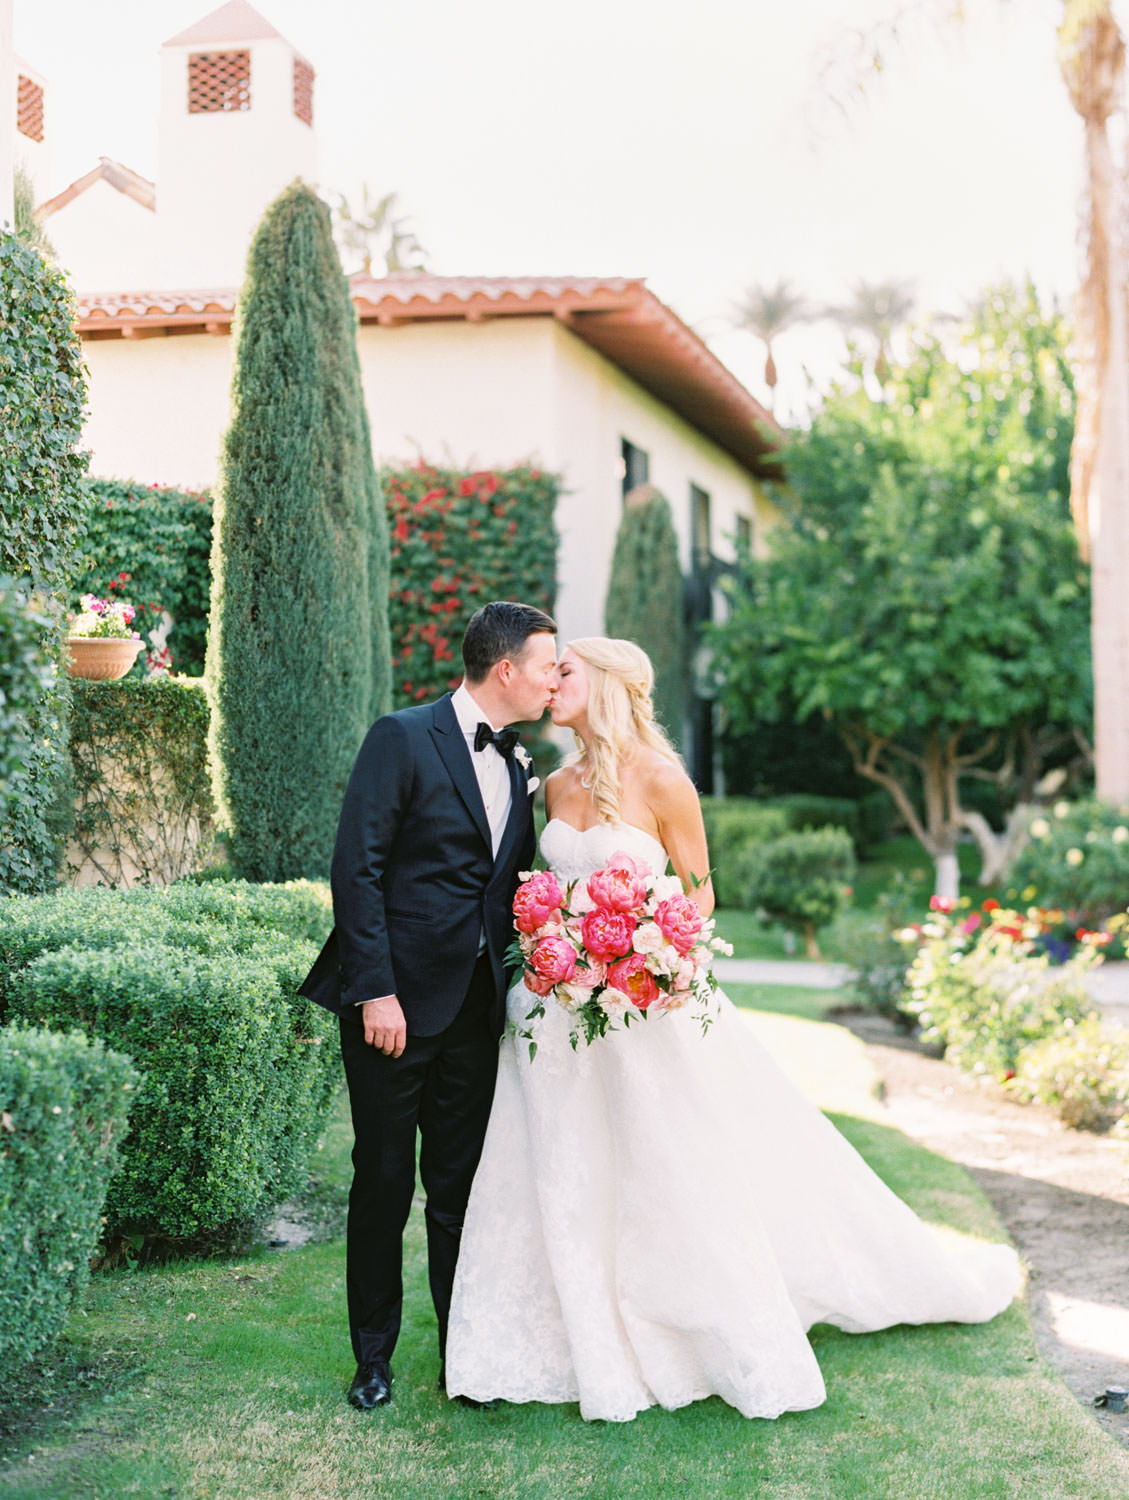 Cypress tree background for Groom in black tux kissing the bride wearing a lace Watters sweetheart gown with large bridal bouquet of pink tones with peonies and roses. Miramonte Resort wedding. Film photography by Cavin Elizabeth.